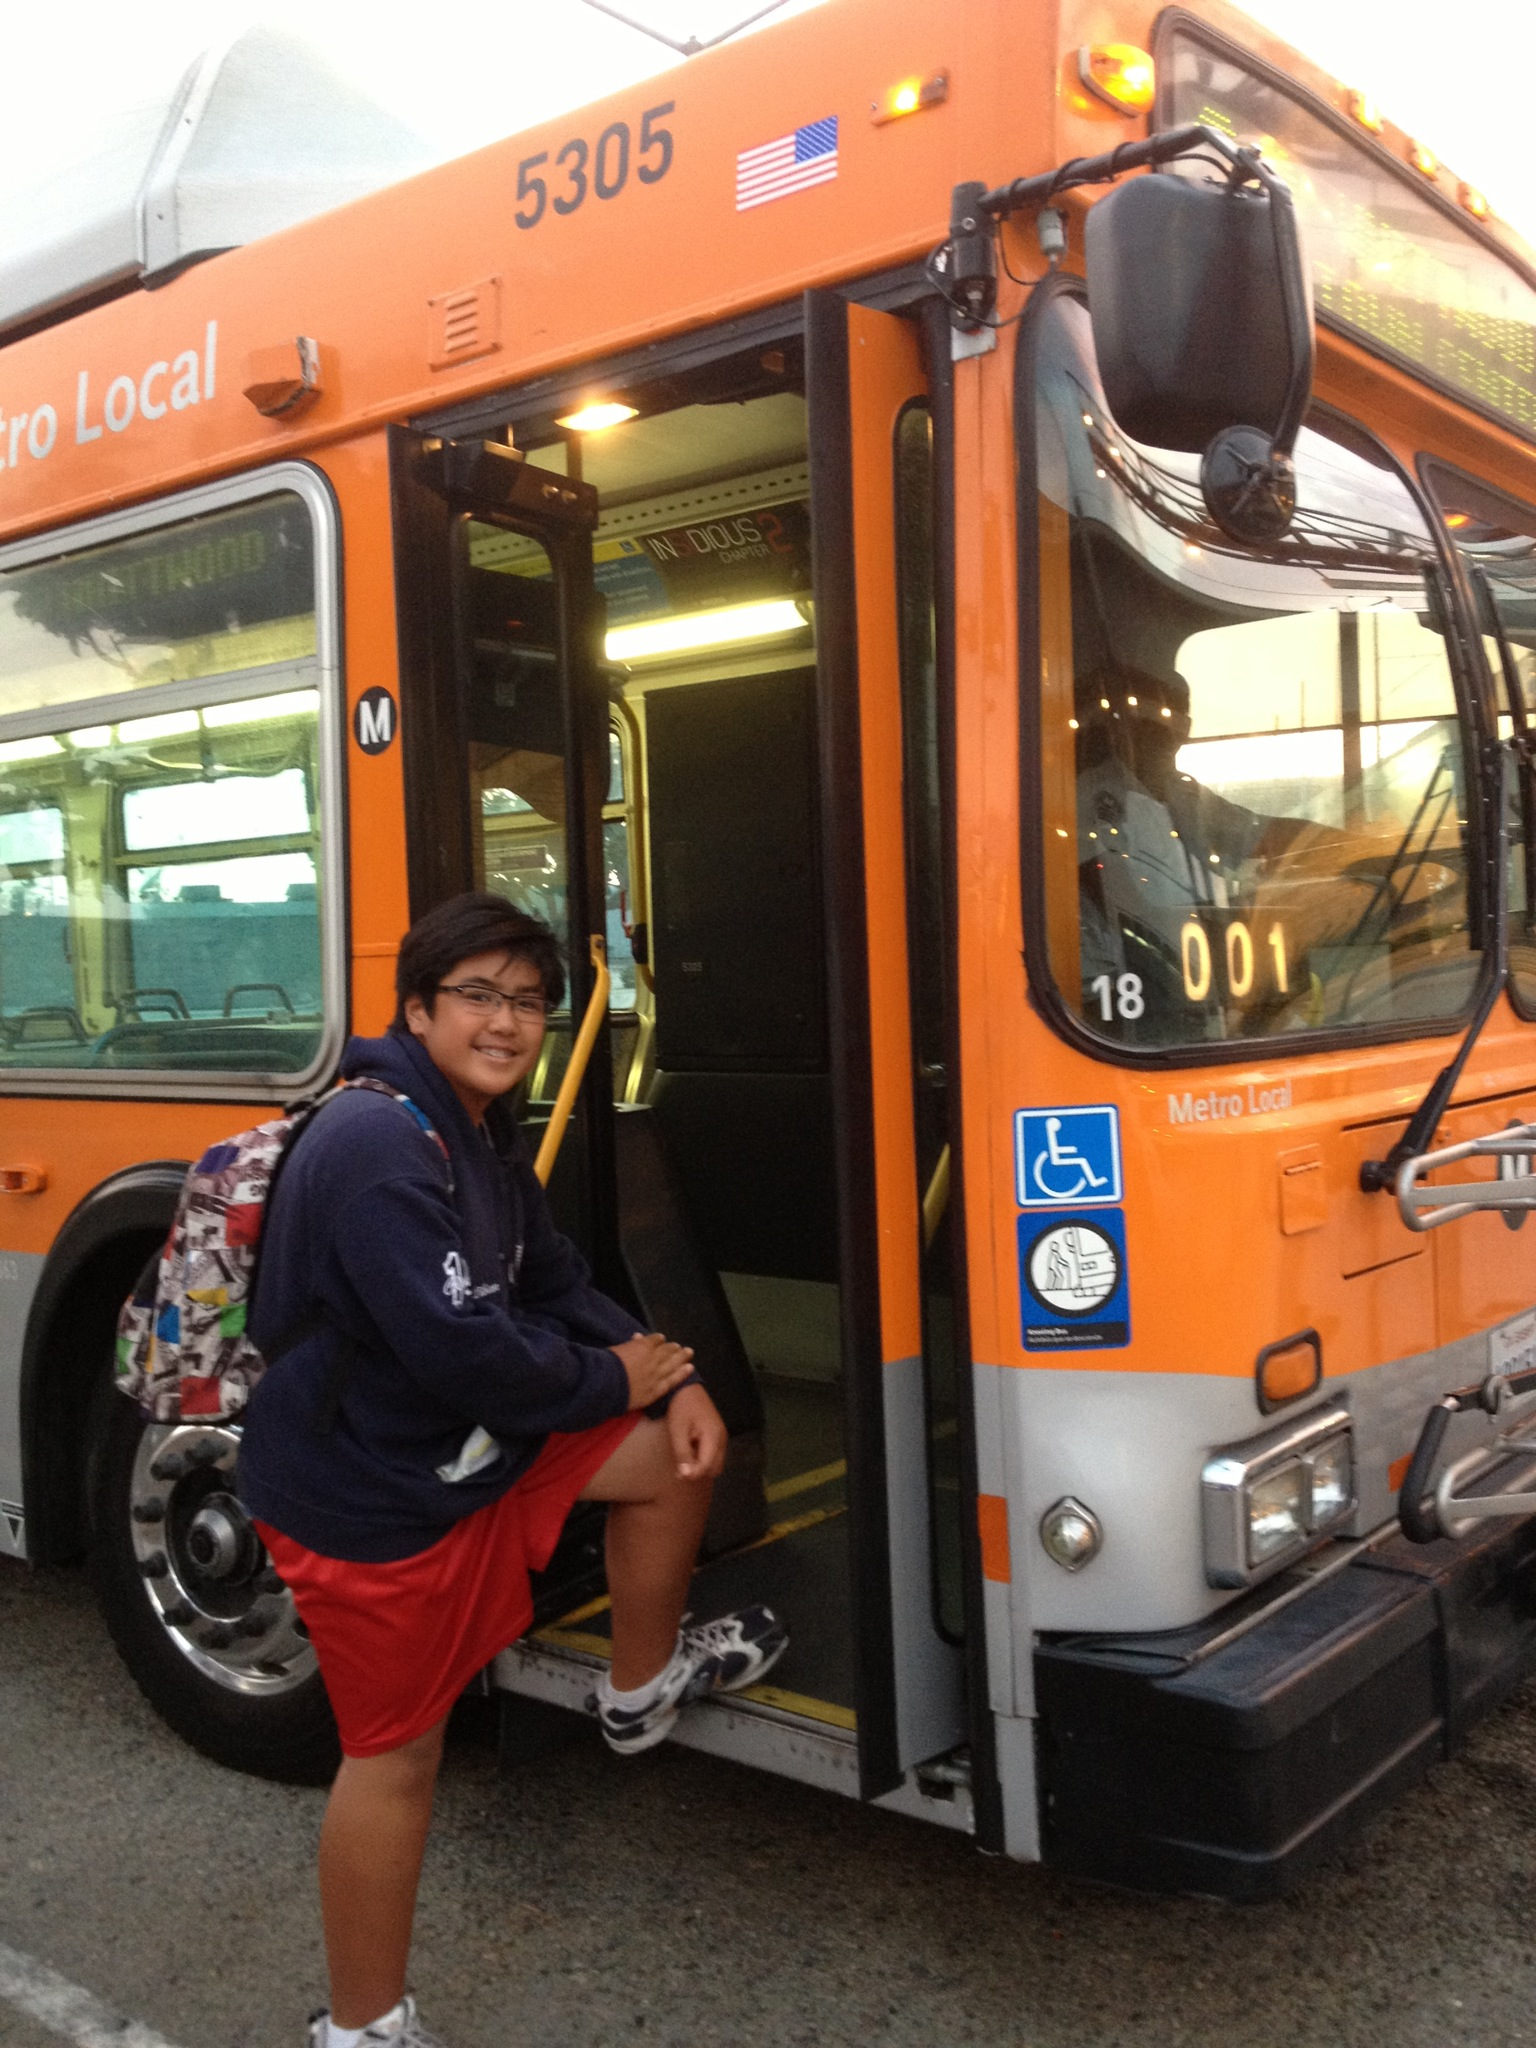 JP is one of many students who rely on Metro to travel to school and around the region. Photos by Cris Liban/Metro.